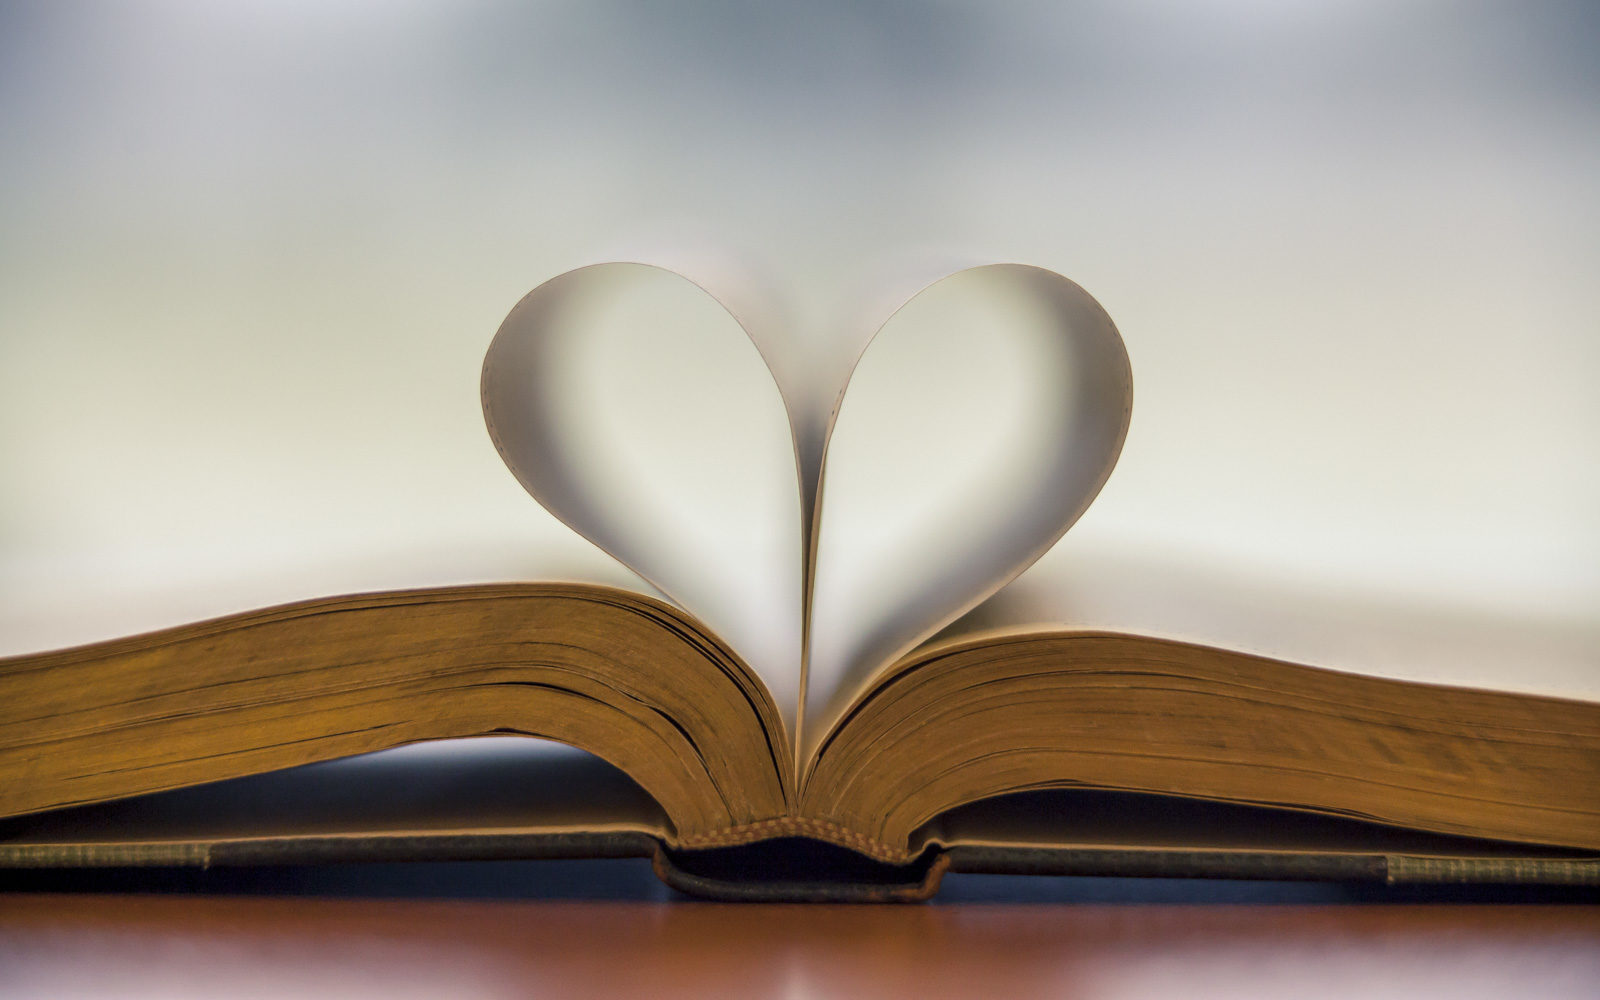 heart in a book